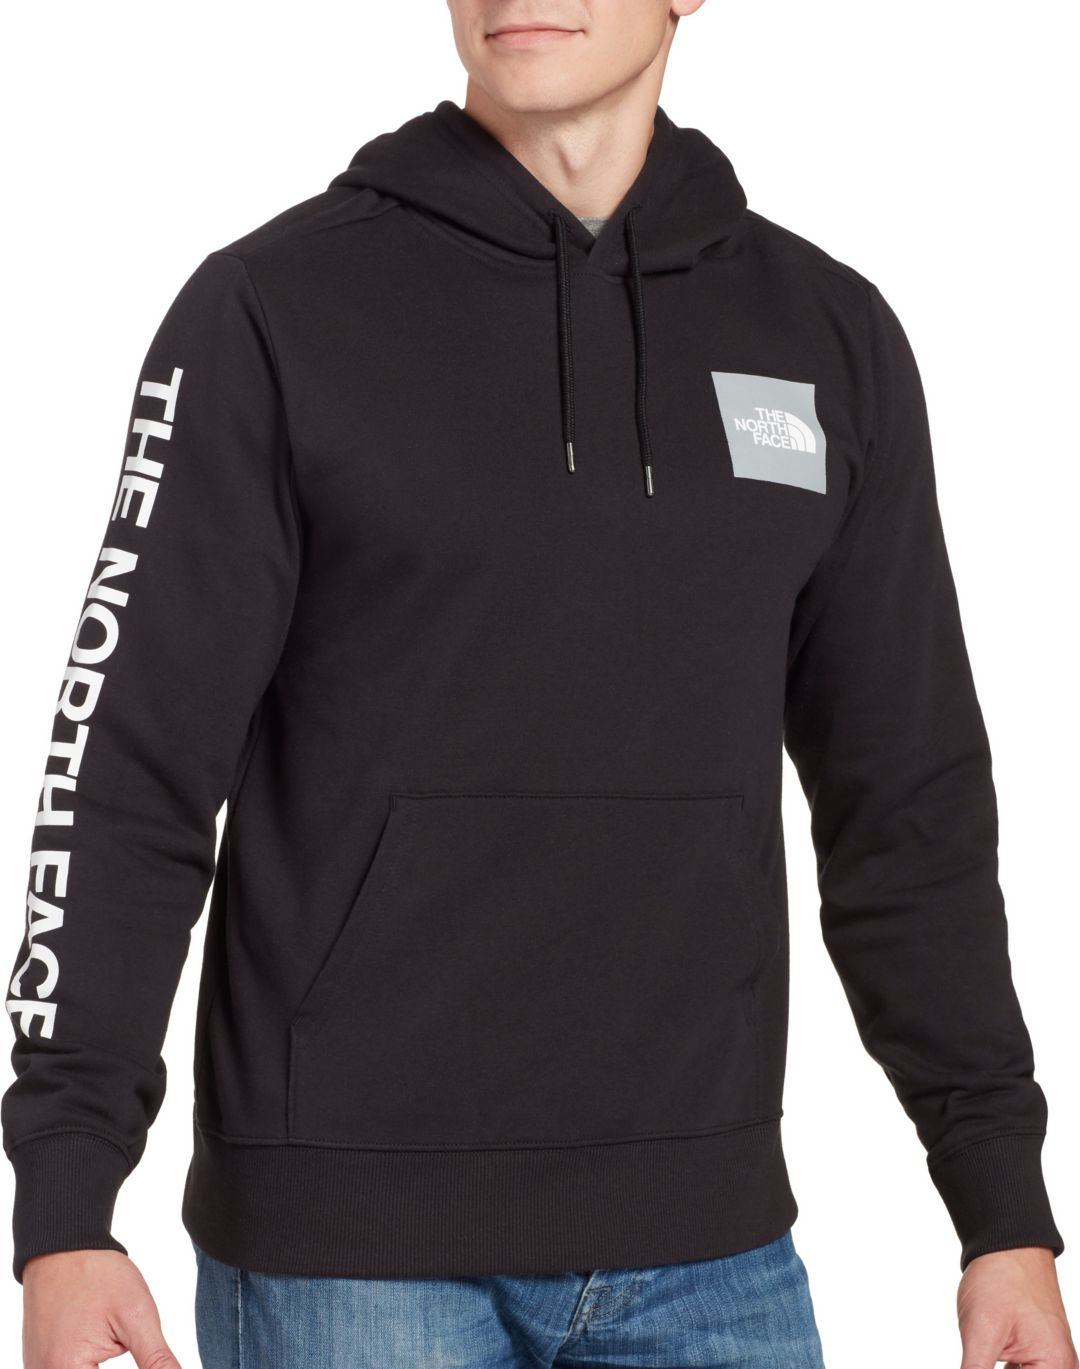 48fee513b The North Face Men's New Record Half Dome Pullover Hoodie. noImageFound. 1